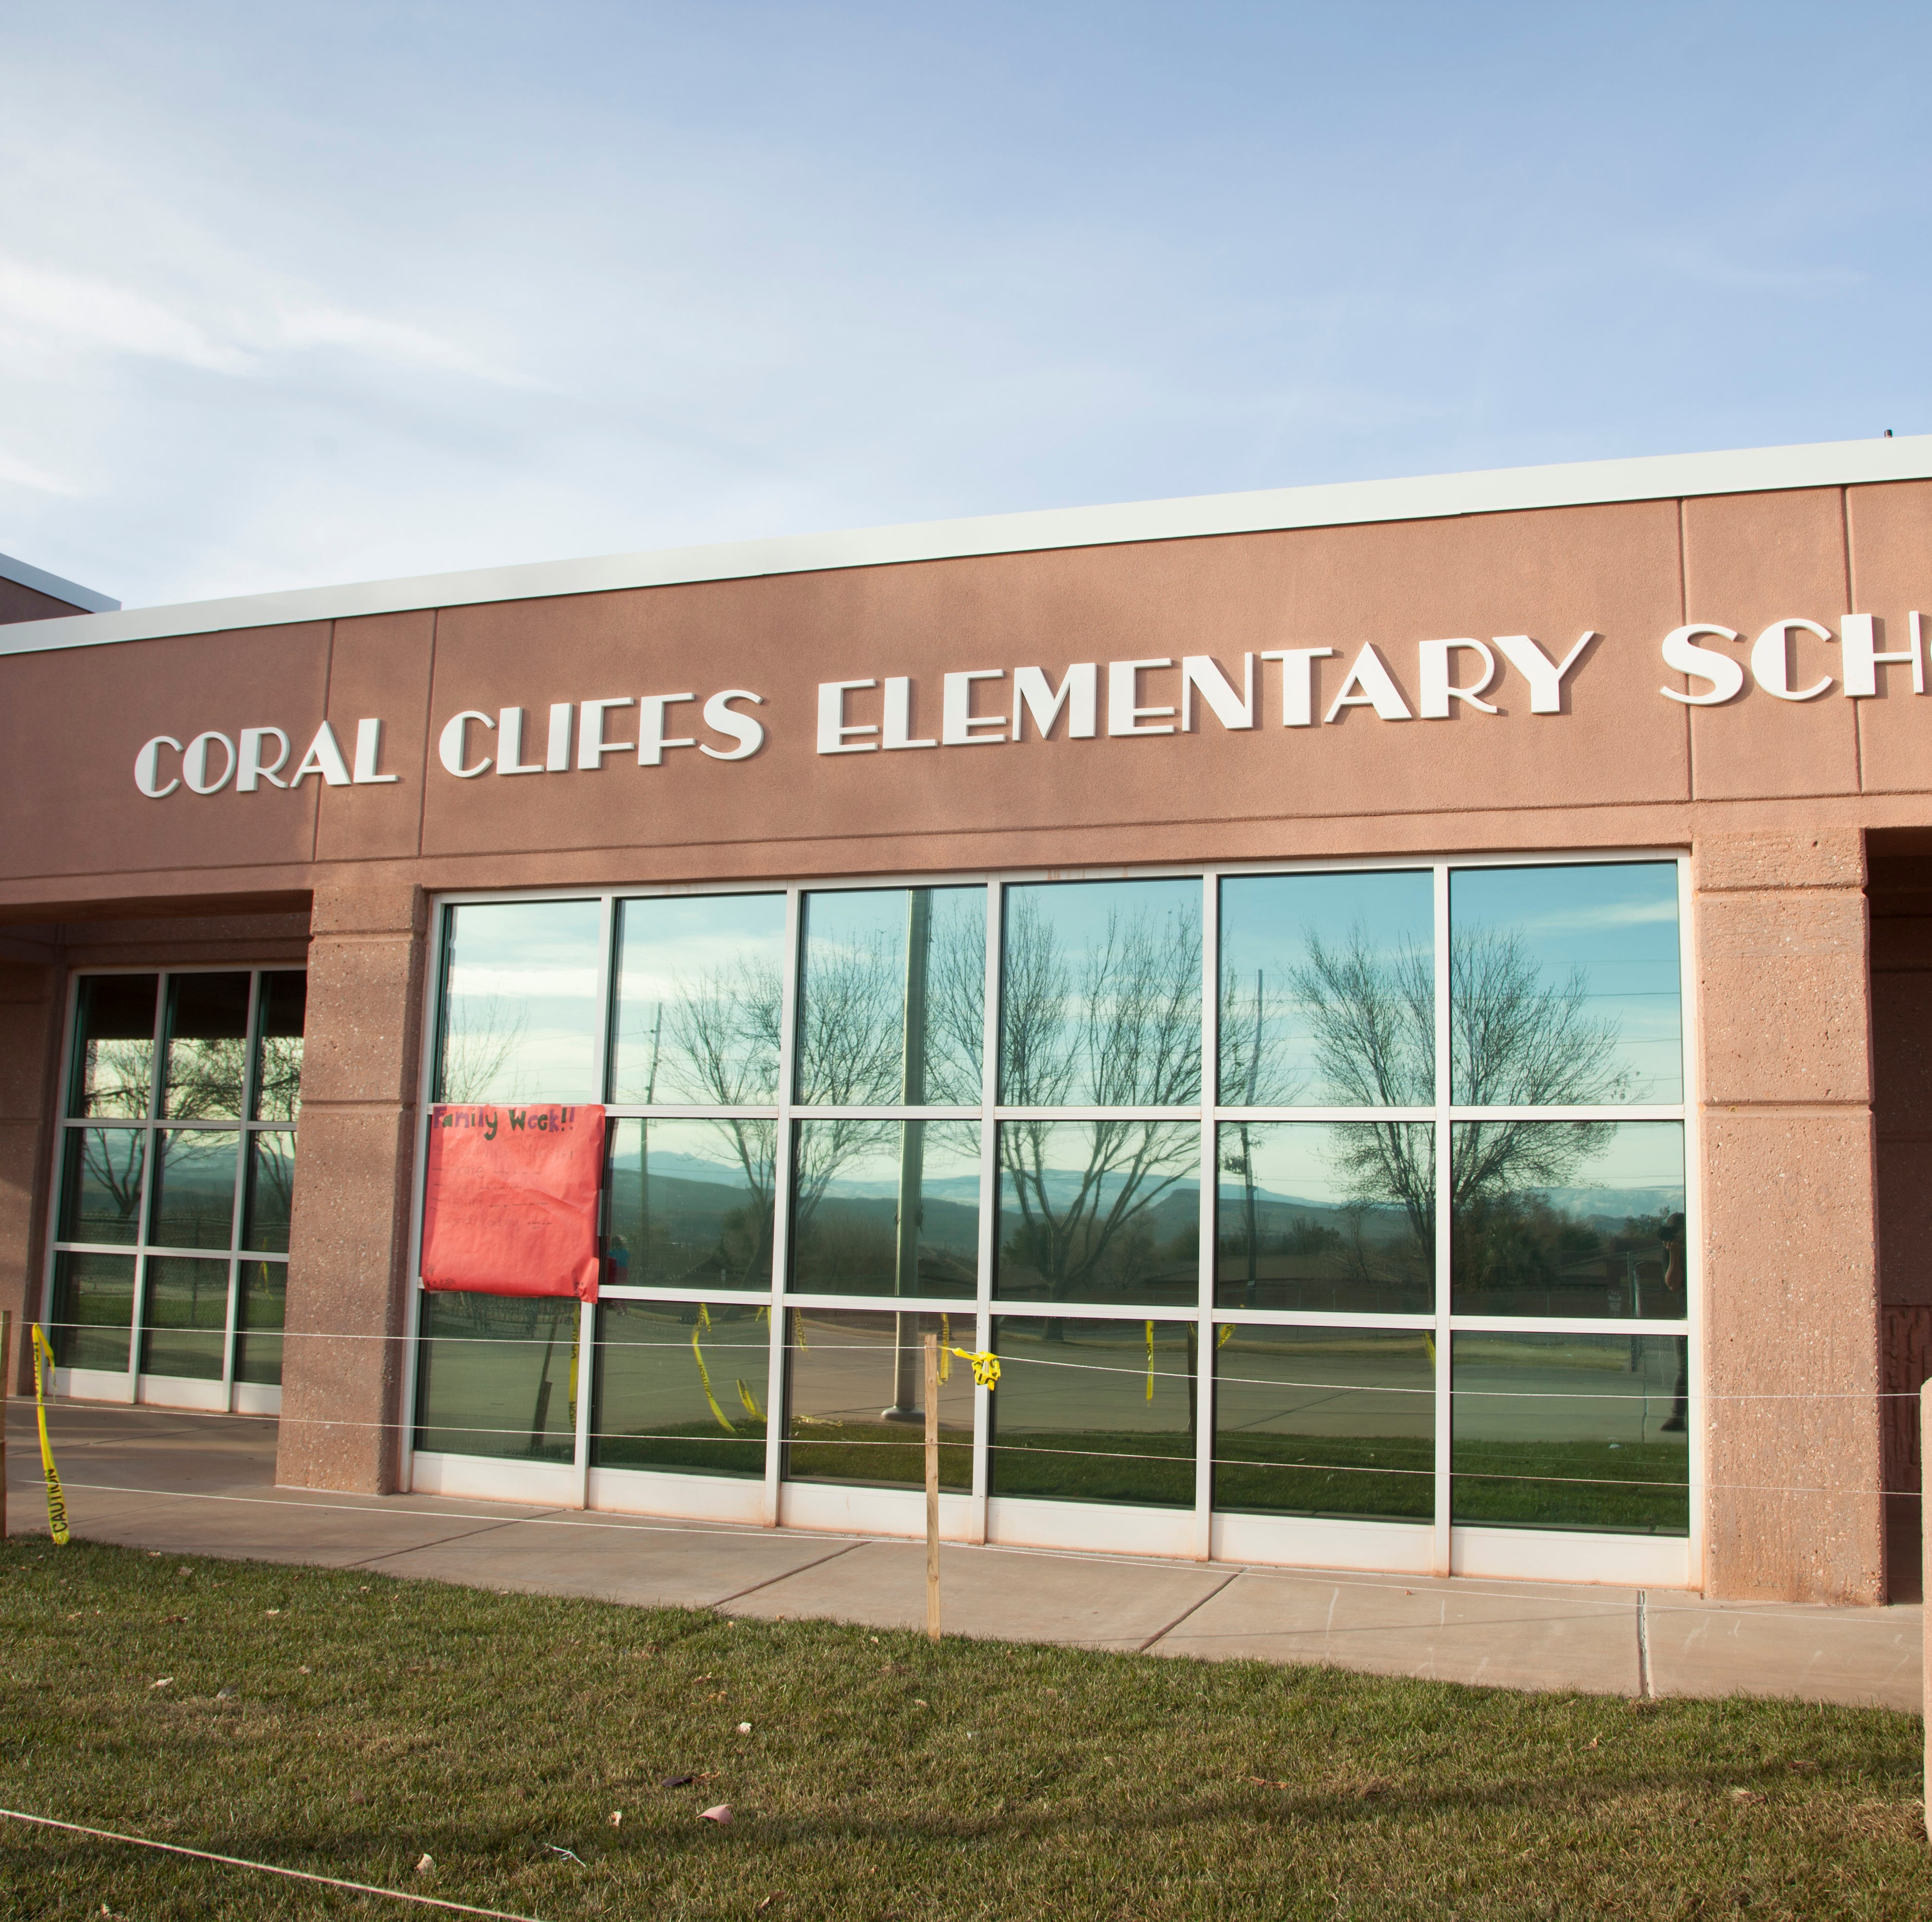 School board votes to re-purpose Coral Cliffs Elementary, change boundaries